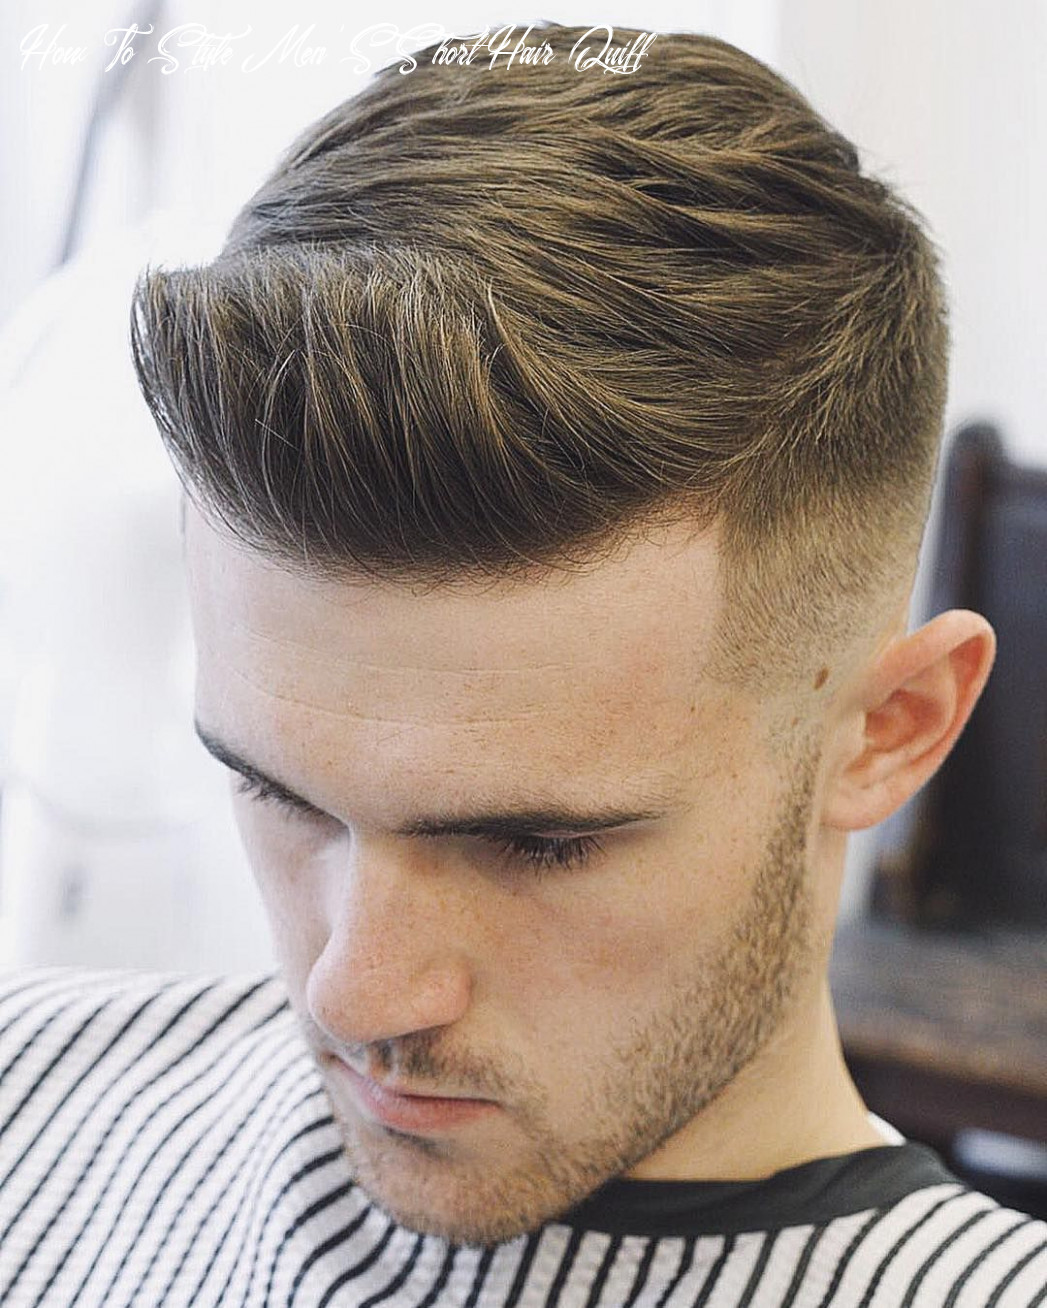 11 new hairstyles for men   mens hairstyles short, mens hairstyles